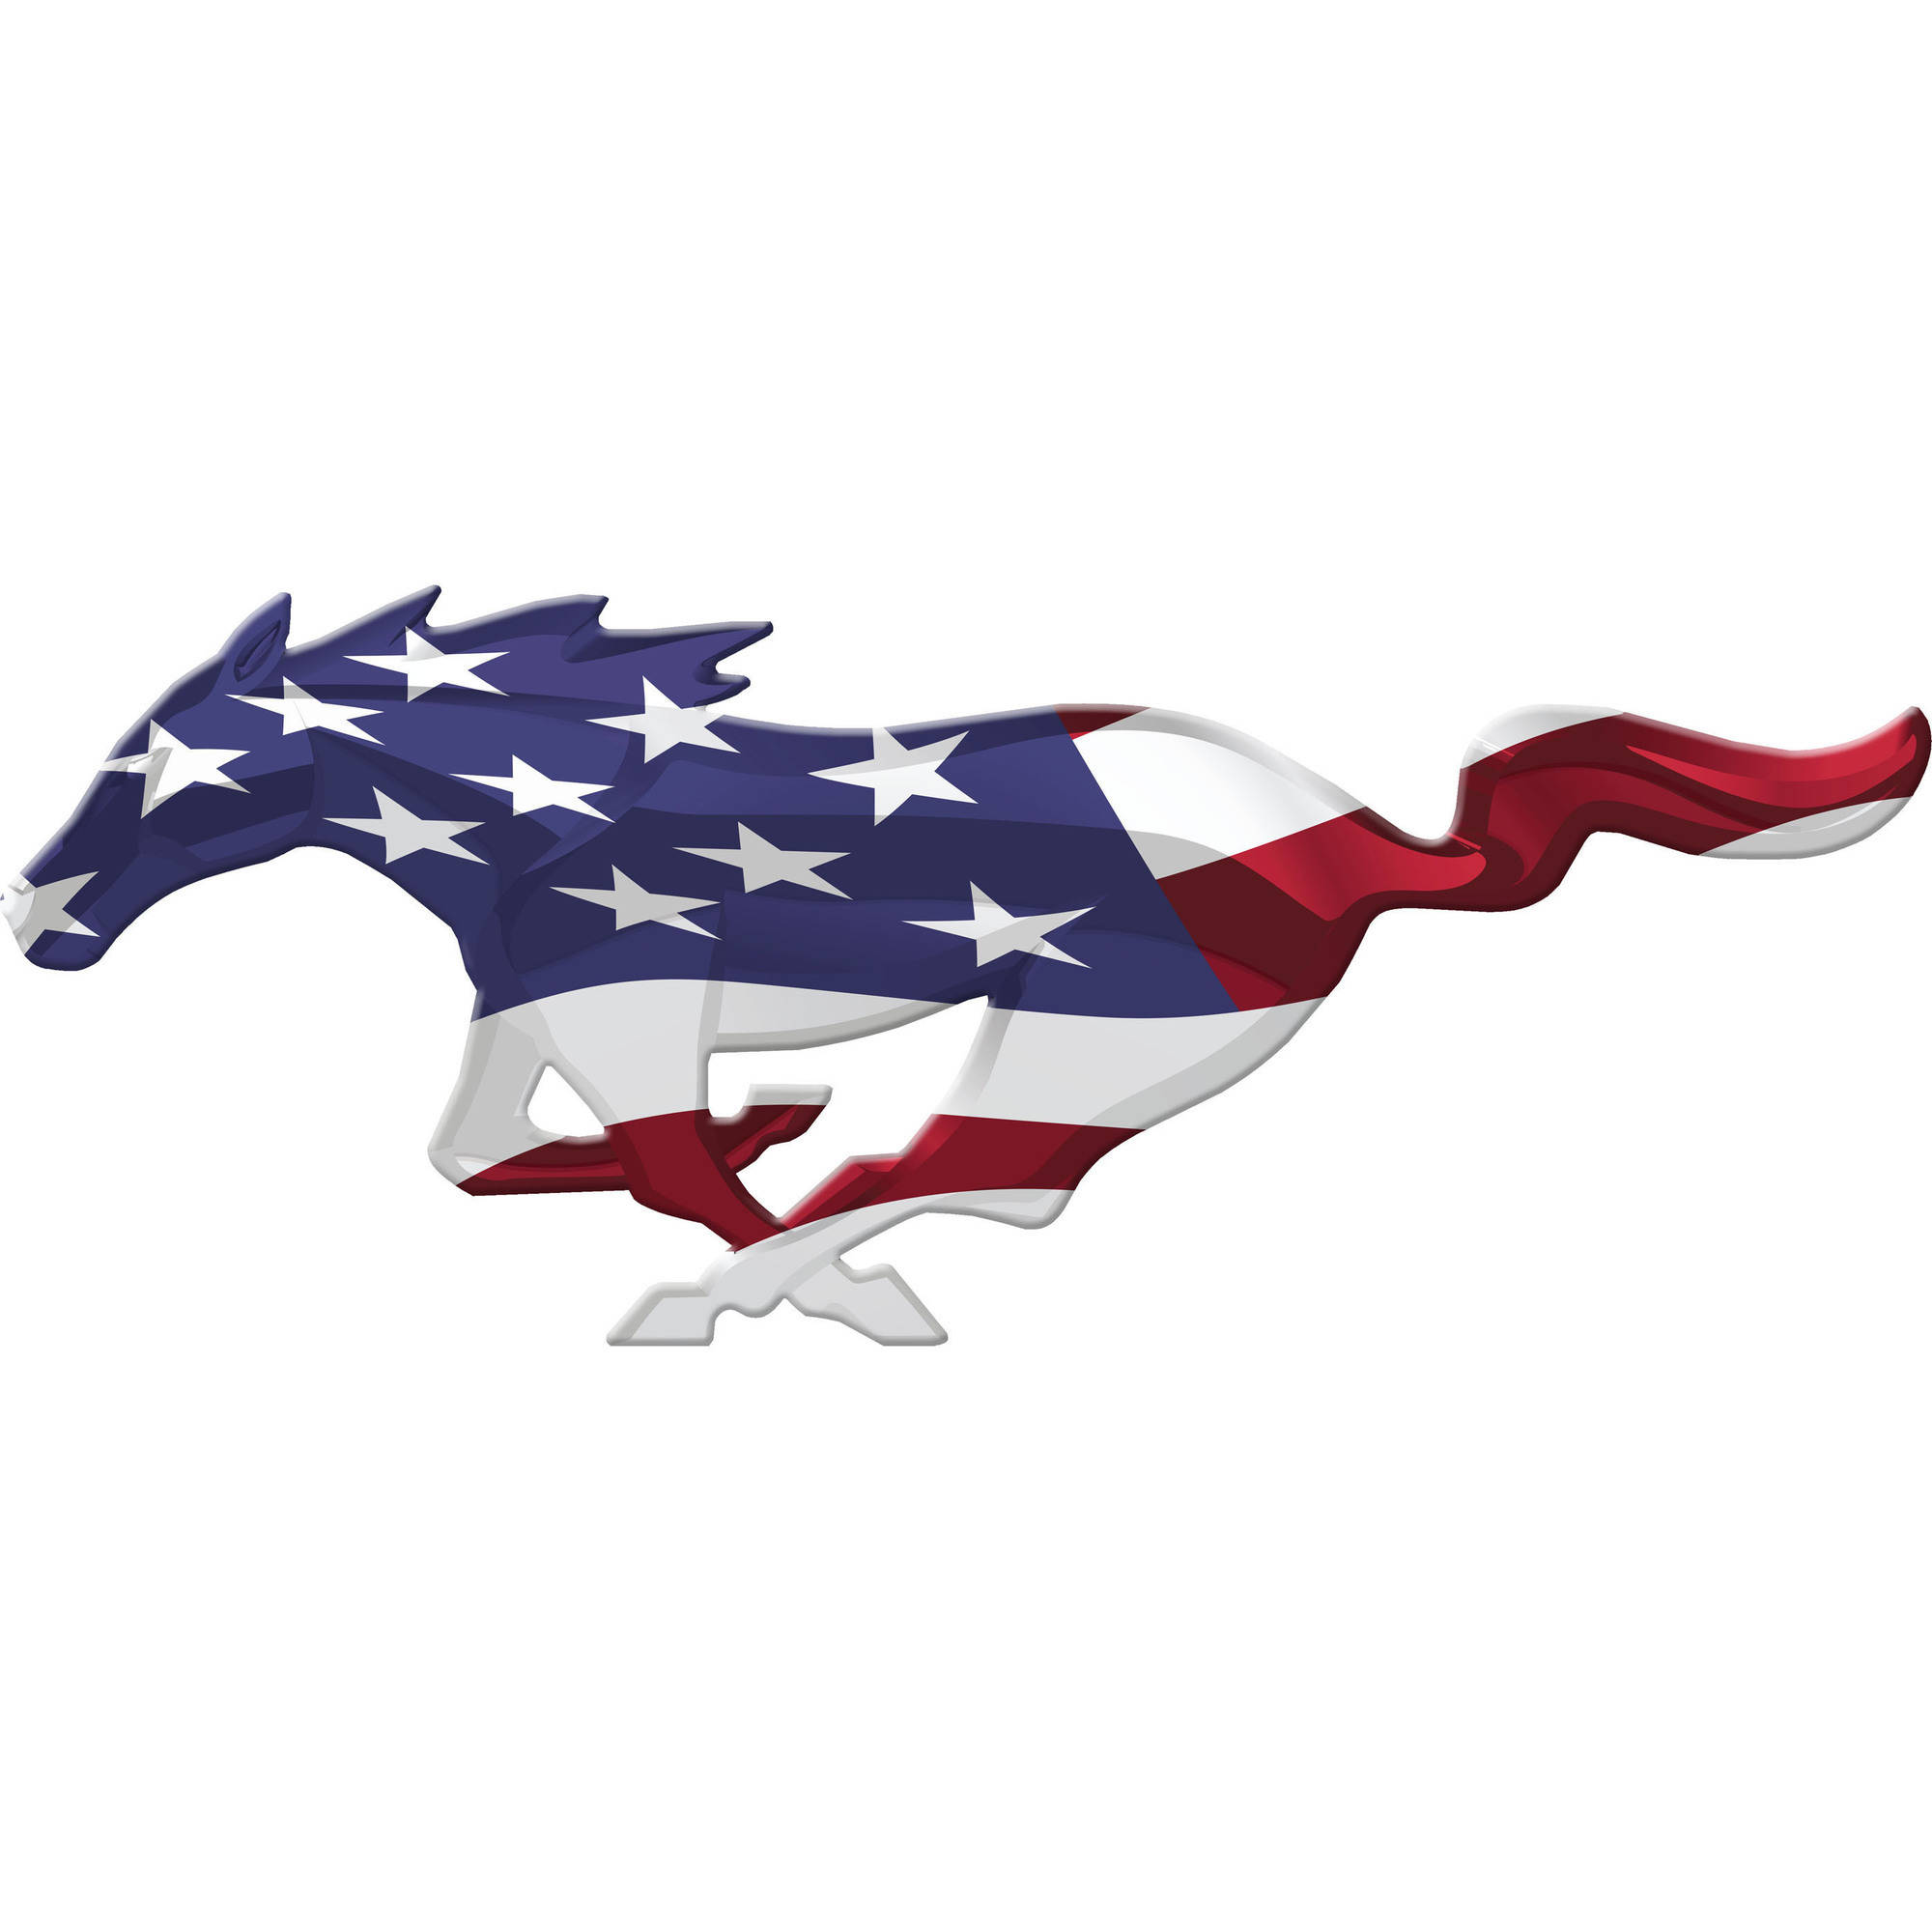 Ford Mustang Unites USA Metal Wall Art By Next Innovations  sc 1 st  Walmart & Ford Mustang Unites USA Metal Wall Art By Next Innovations ...